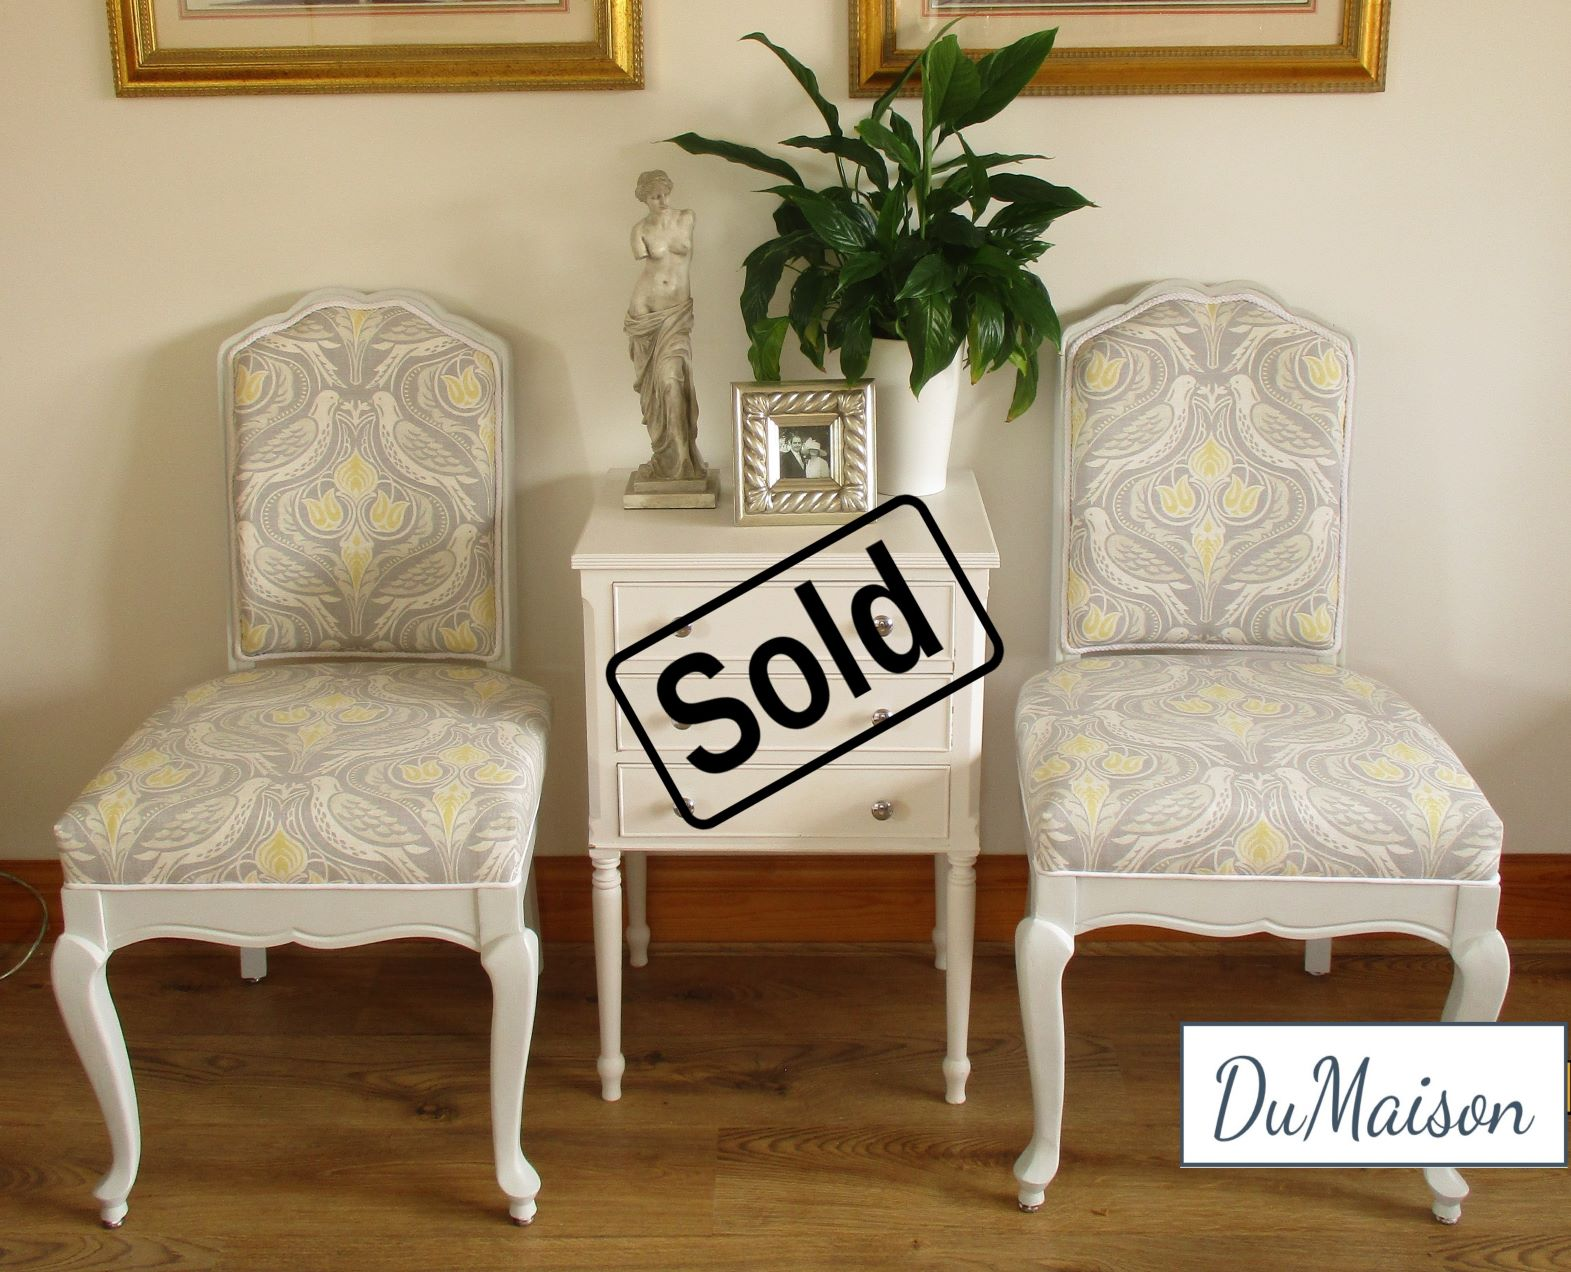 Dove Chairs - Sold